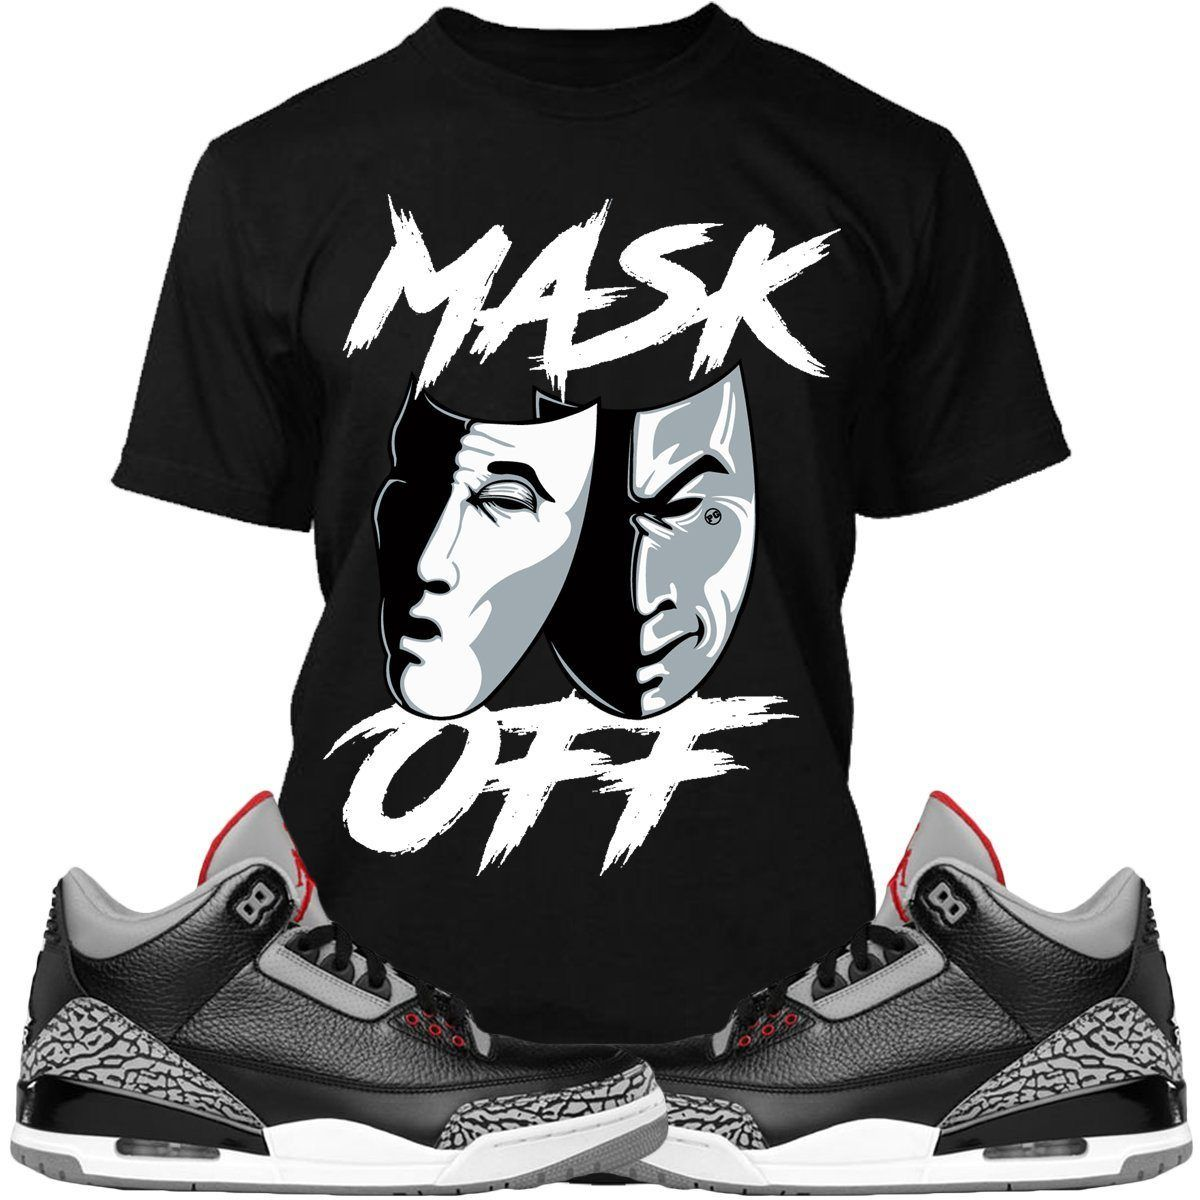 the best attitude ae3b8 fbb08 Jordan 3 Black Cement Sneaker Tee Shirt to match made by Planet Grapes  Clothing. Shirt